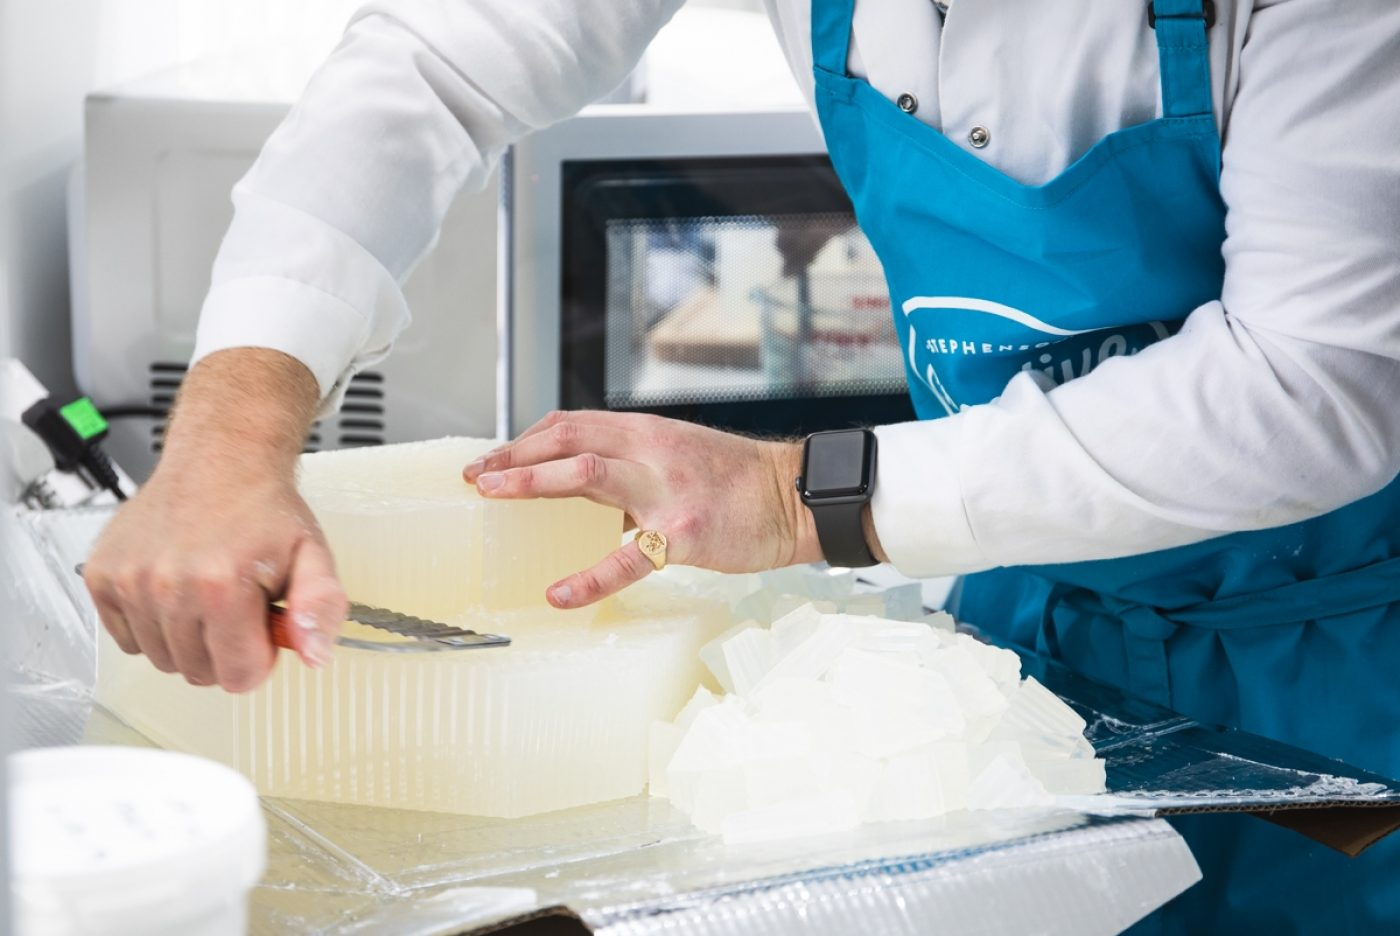 Person in white coat and blue apron cutting a large block of soap.